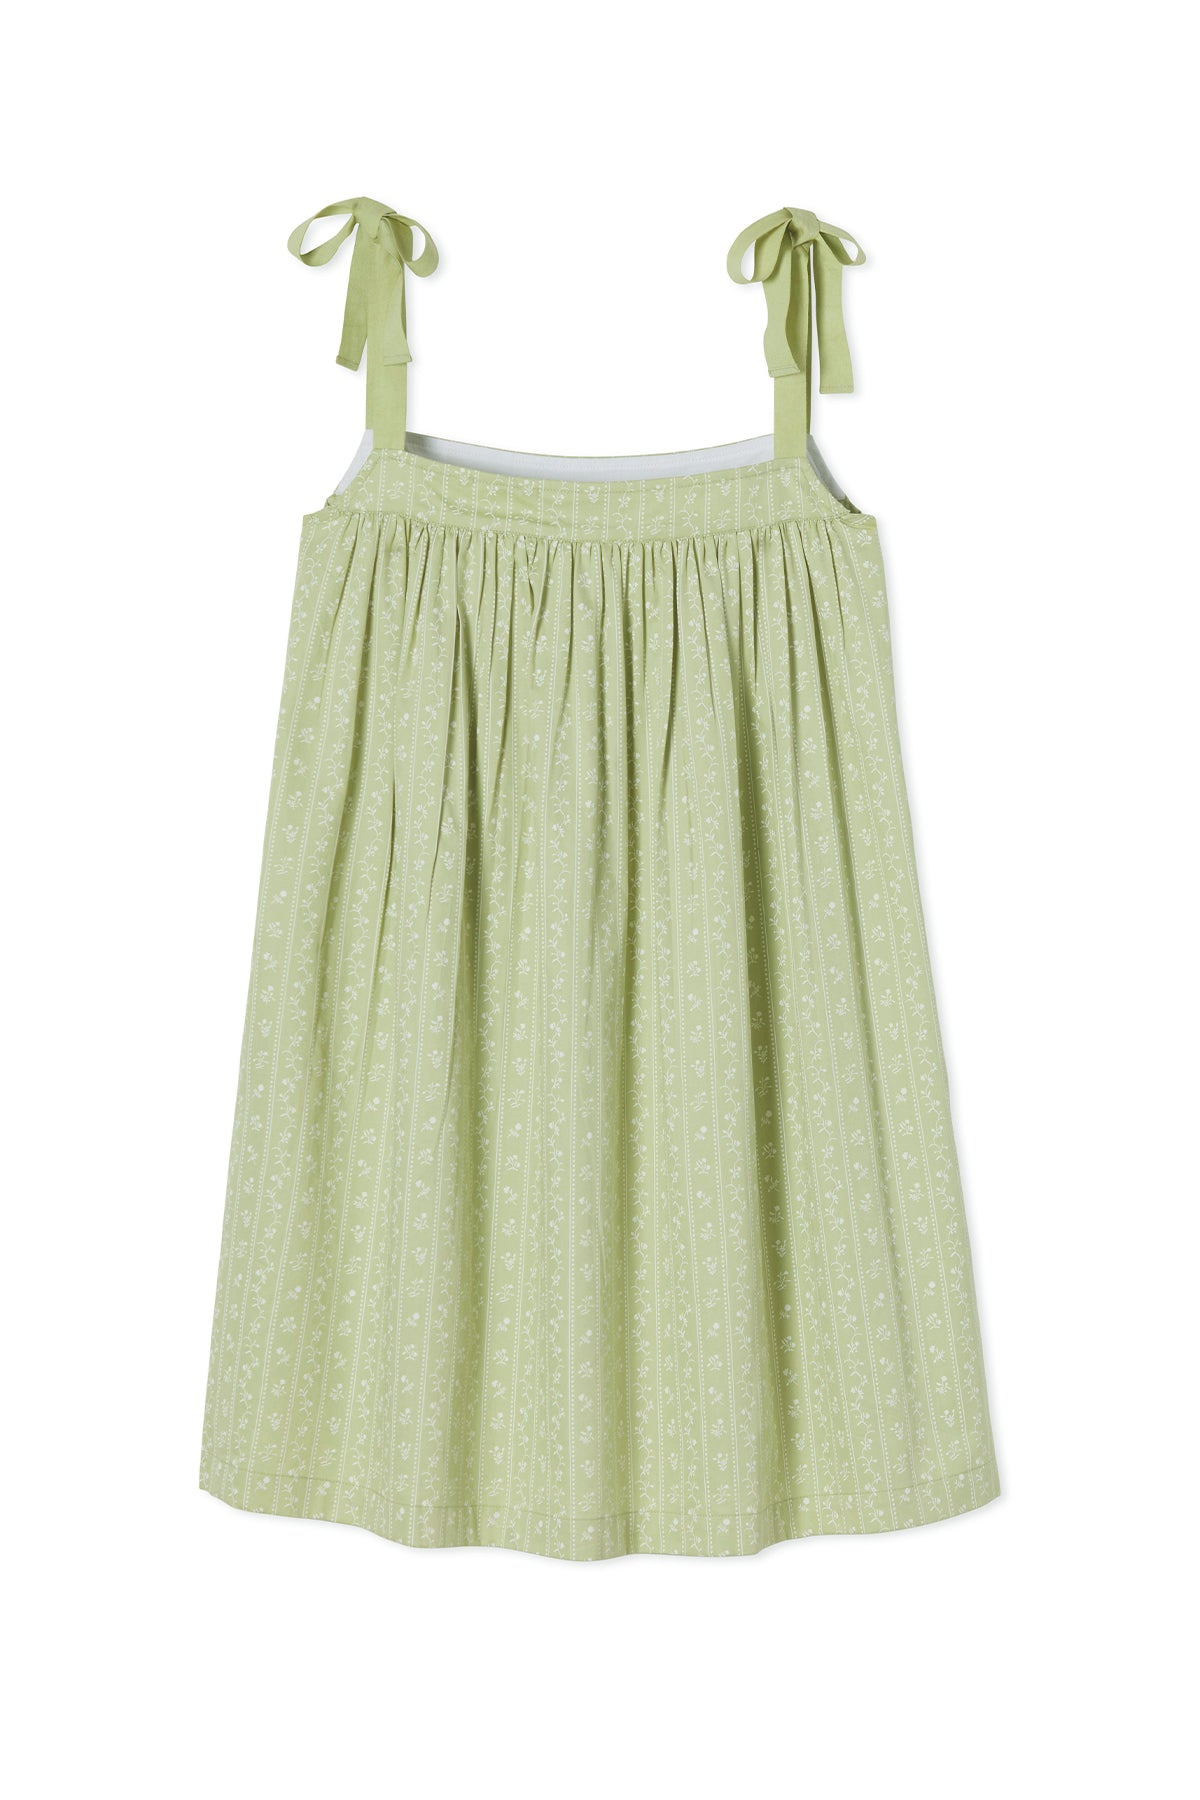 JB x LAKE Day Dress in Green Trellis